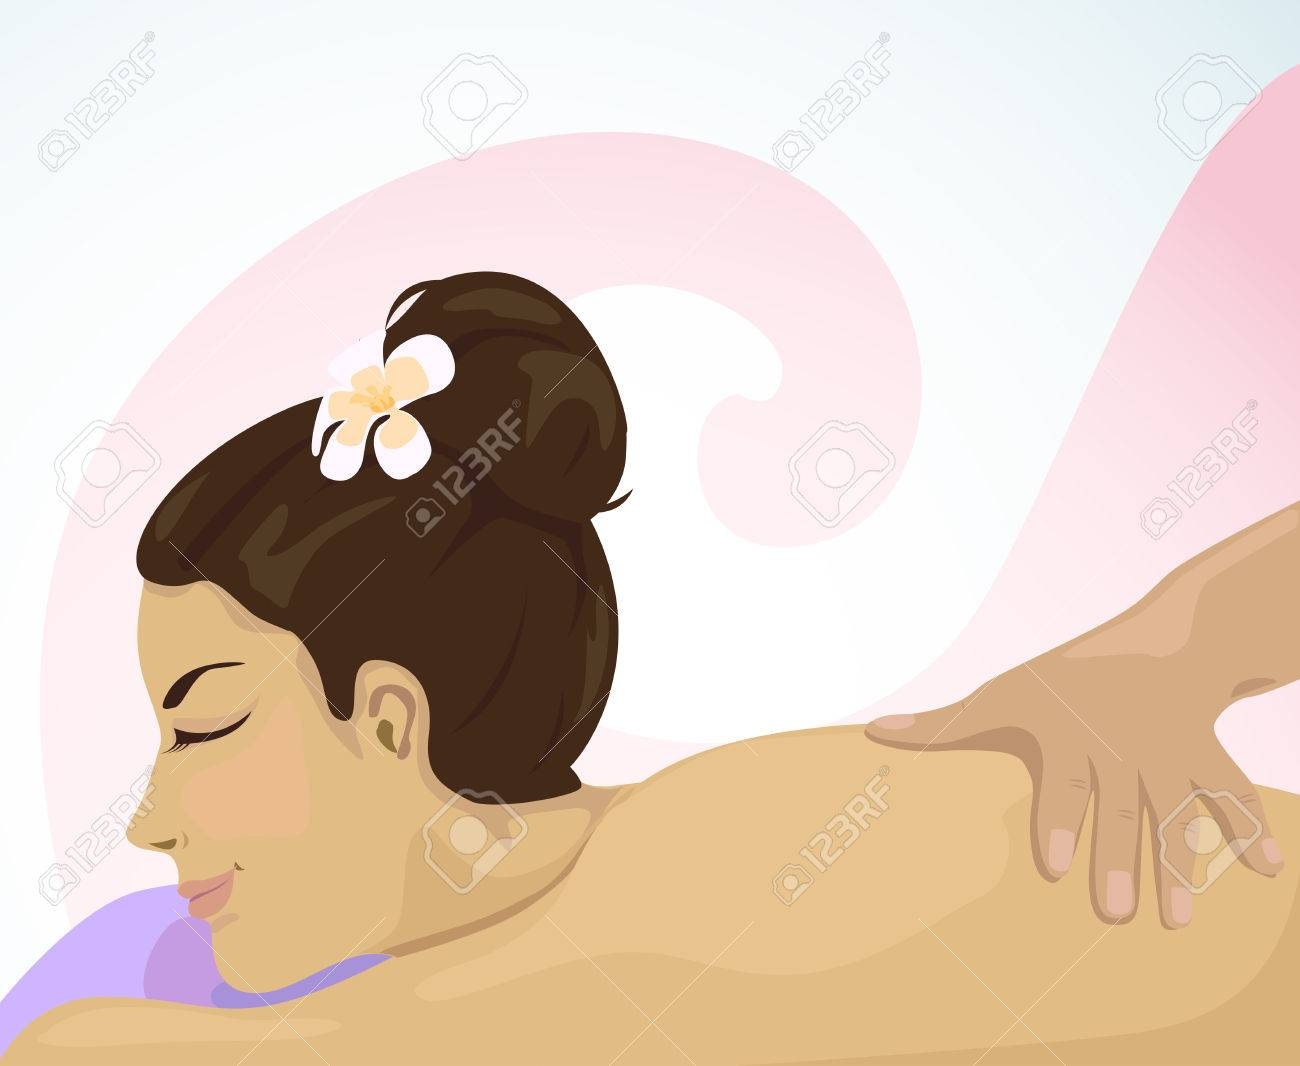 Reflexology and massages for relaxation. woman have smile on her face with relaxing massage. Stock Vector - 22731506